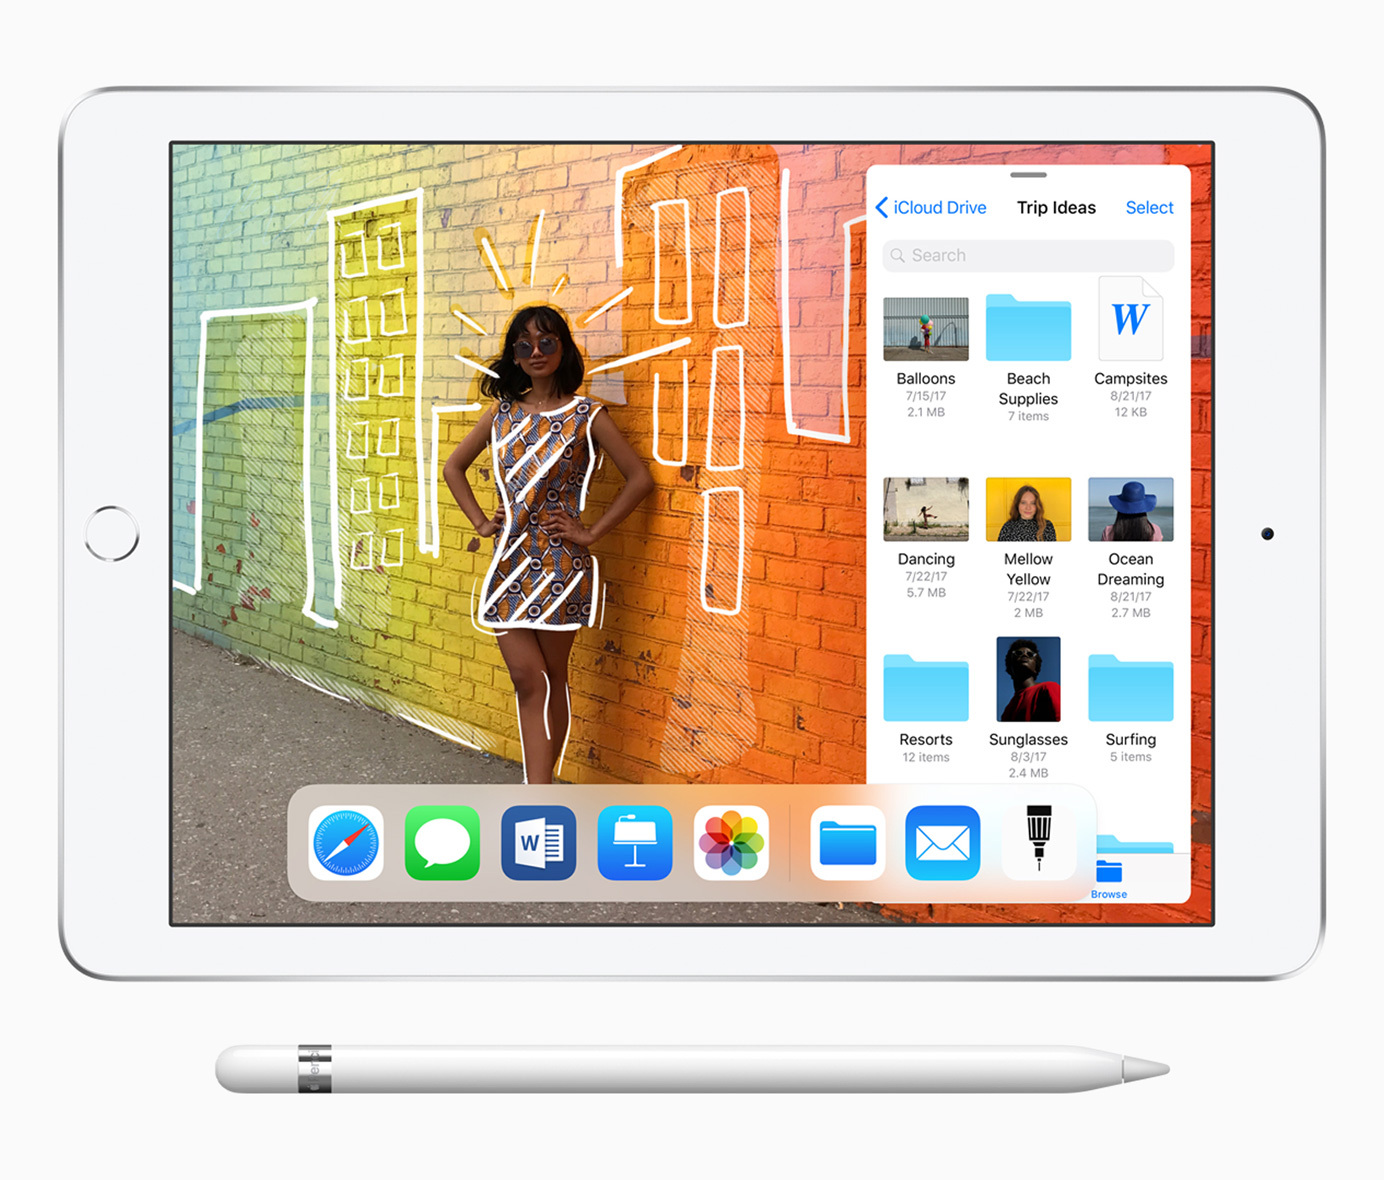 The new ipad supports apple pencil and features even greater performance starting at 329